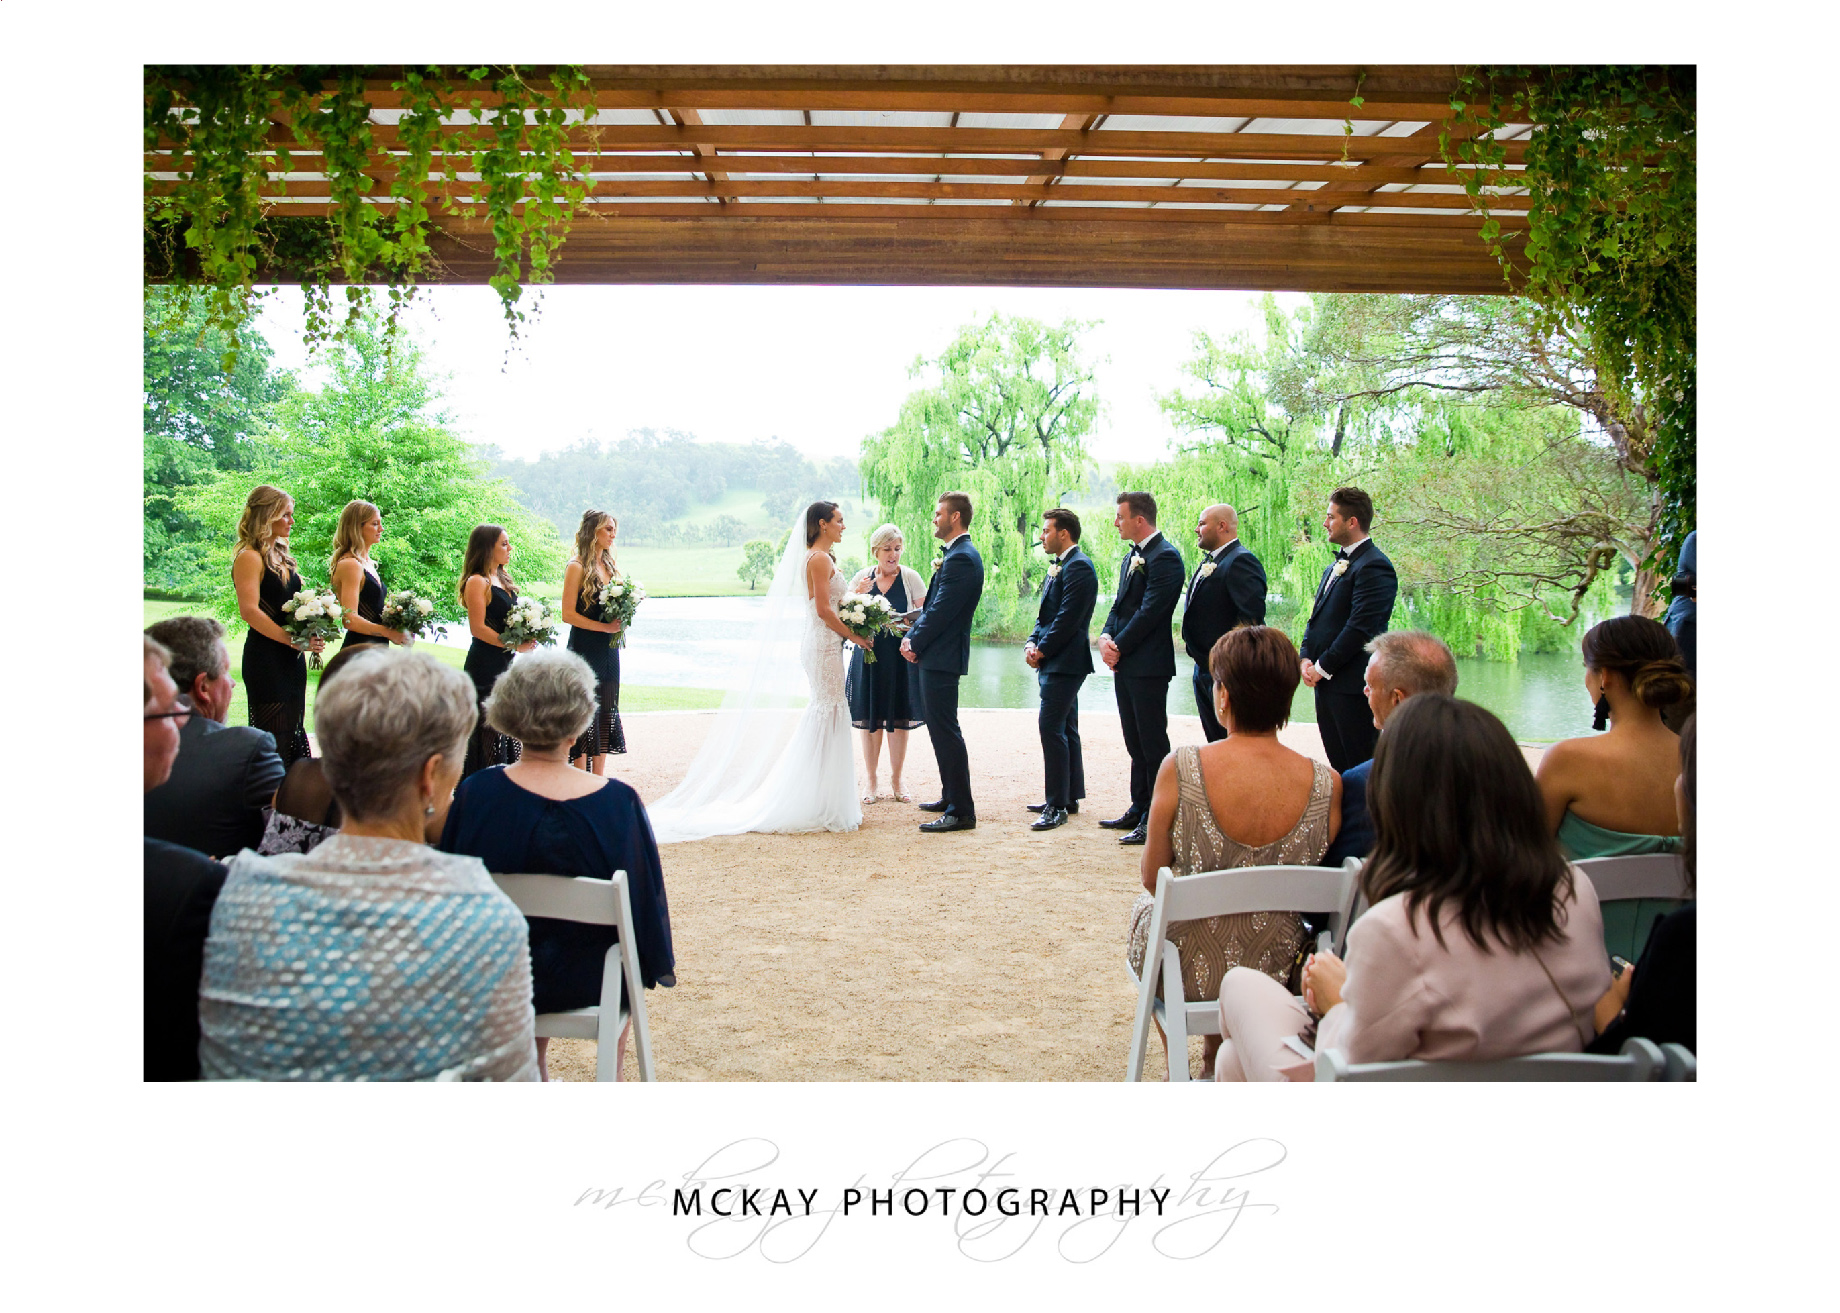 The Pavillion at Bendooley Estate - a great wet weather ceremony option